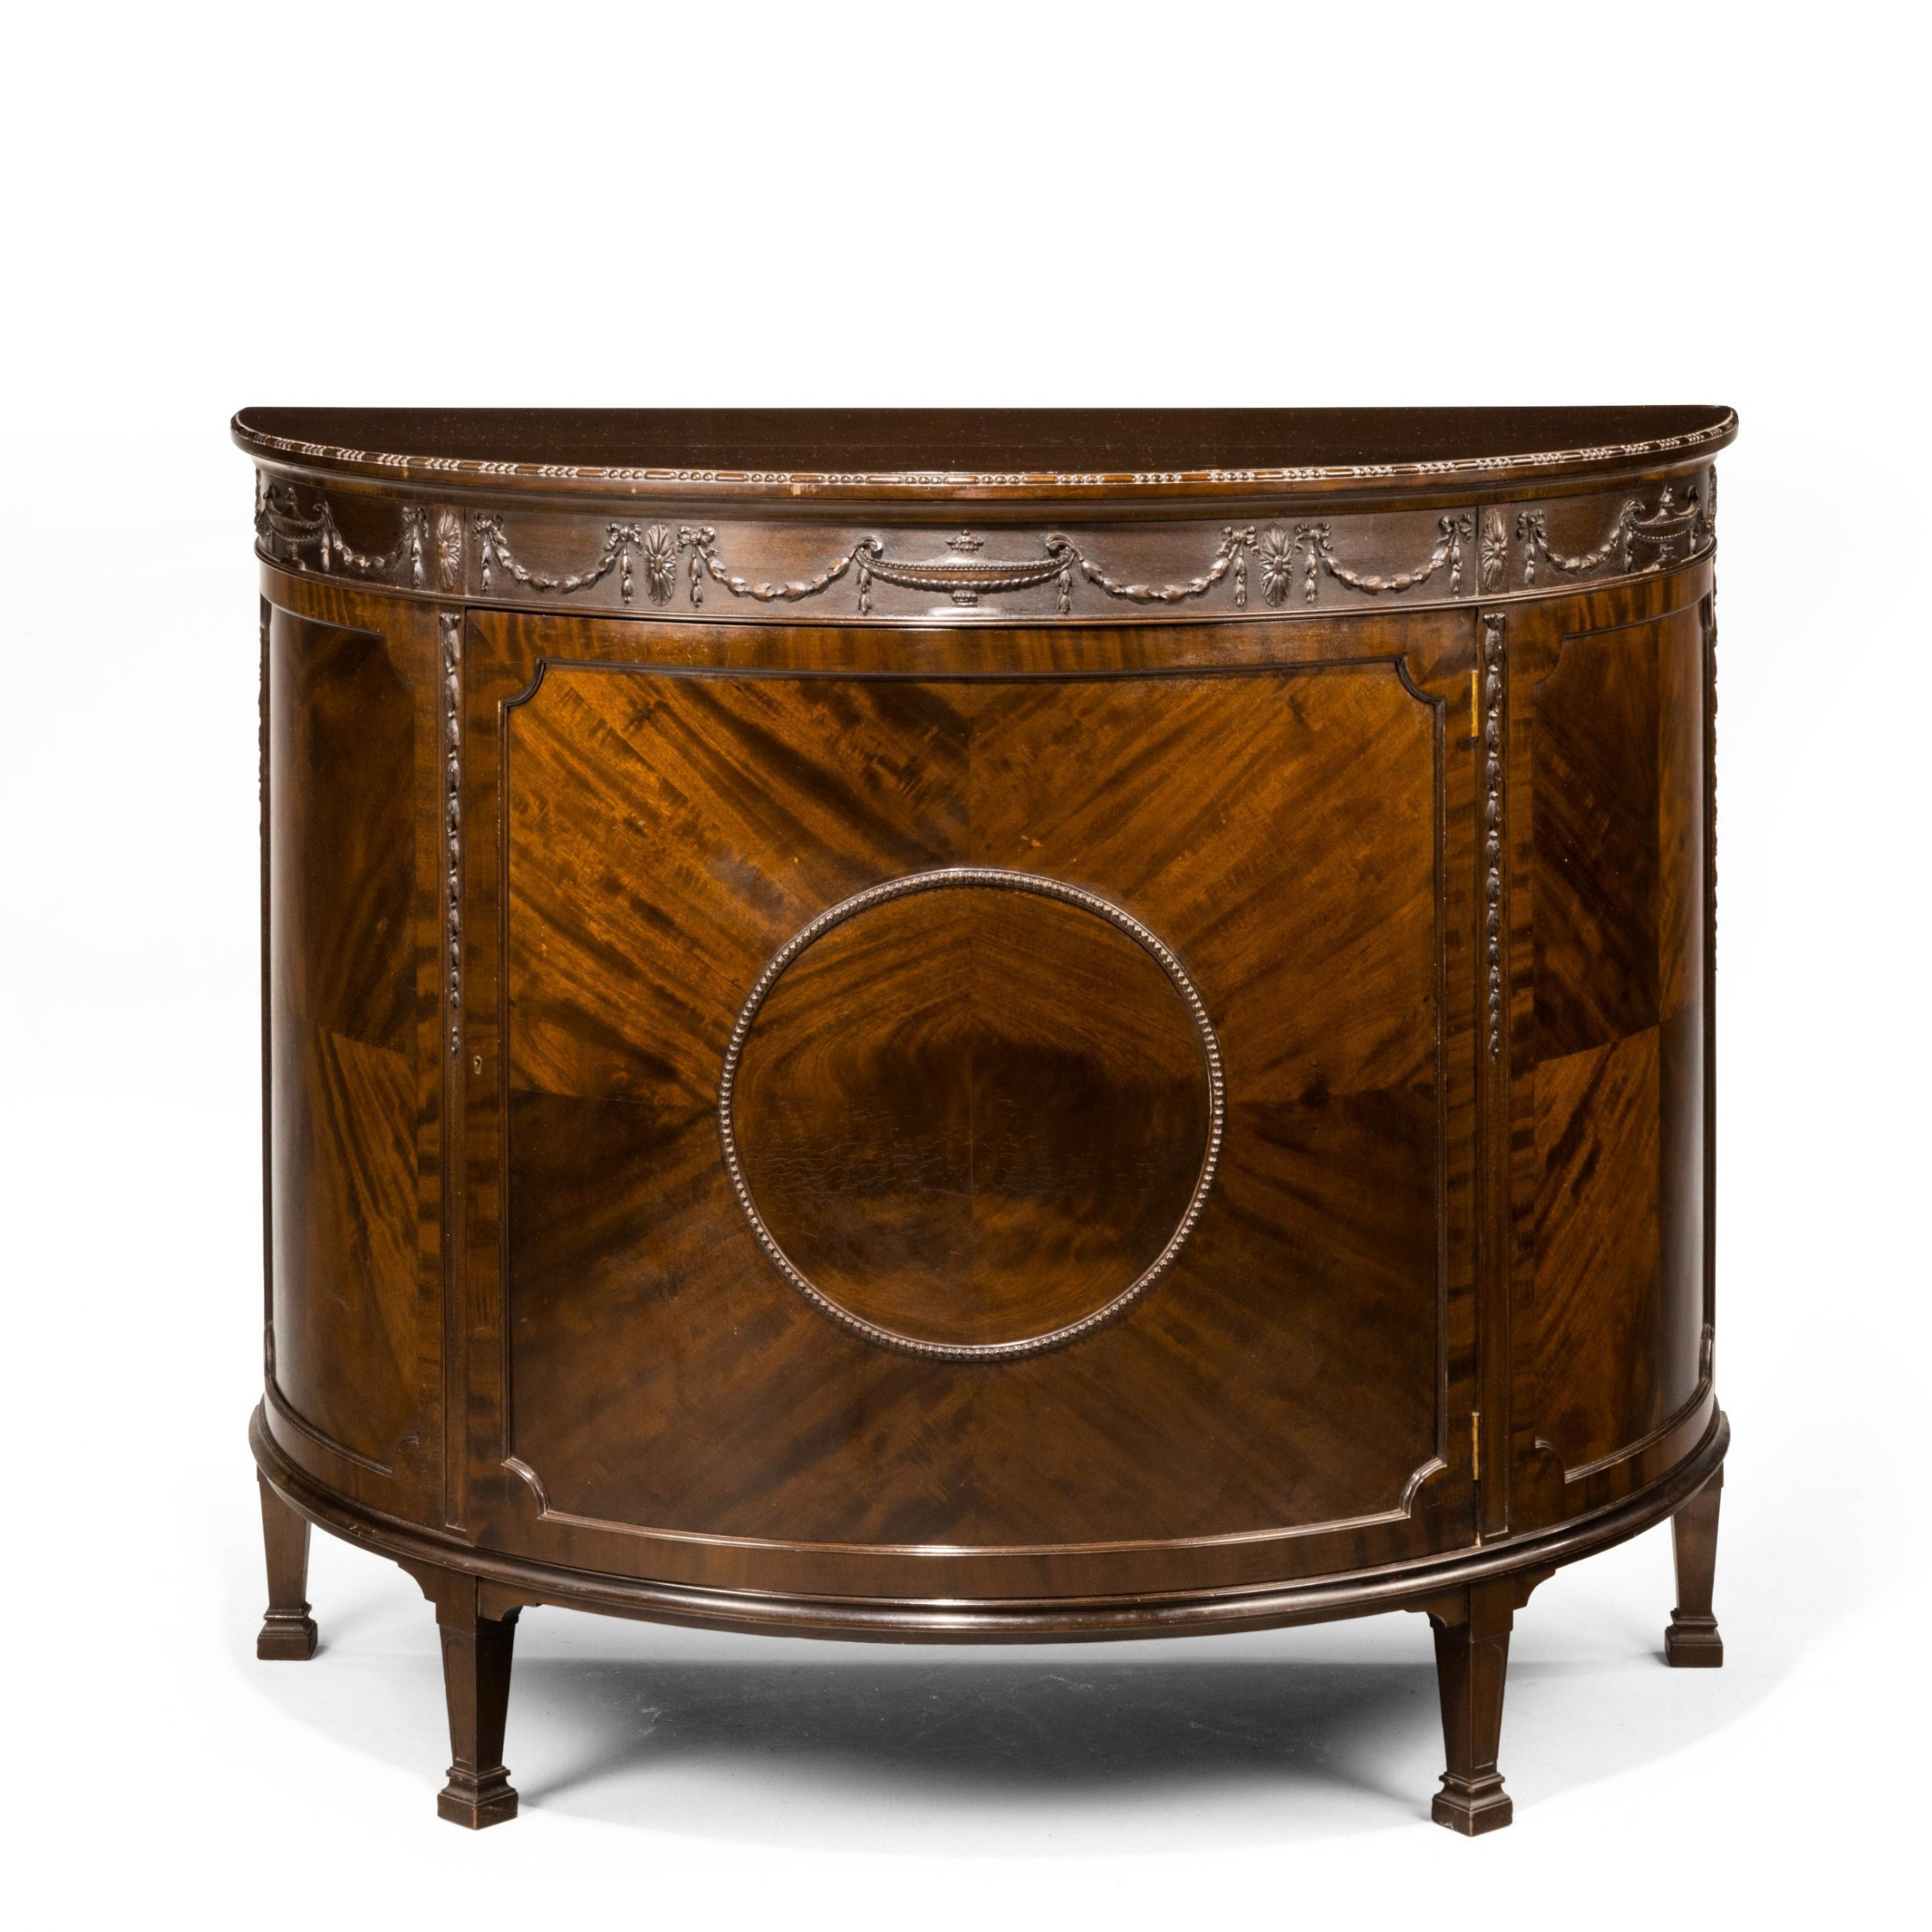 an early 20th century robert adam influenced mahogany demilune cabinet